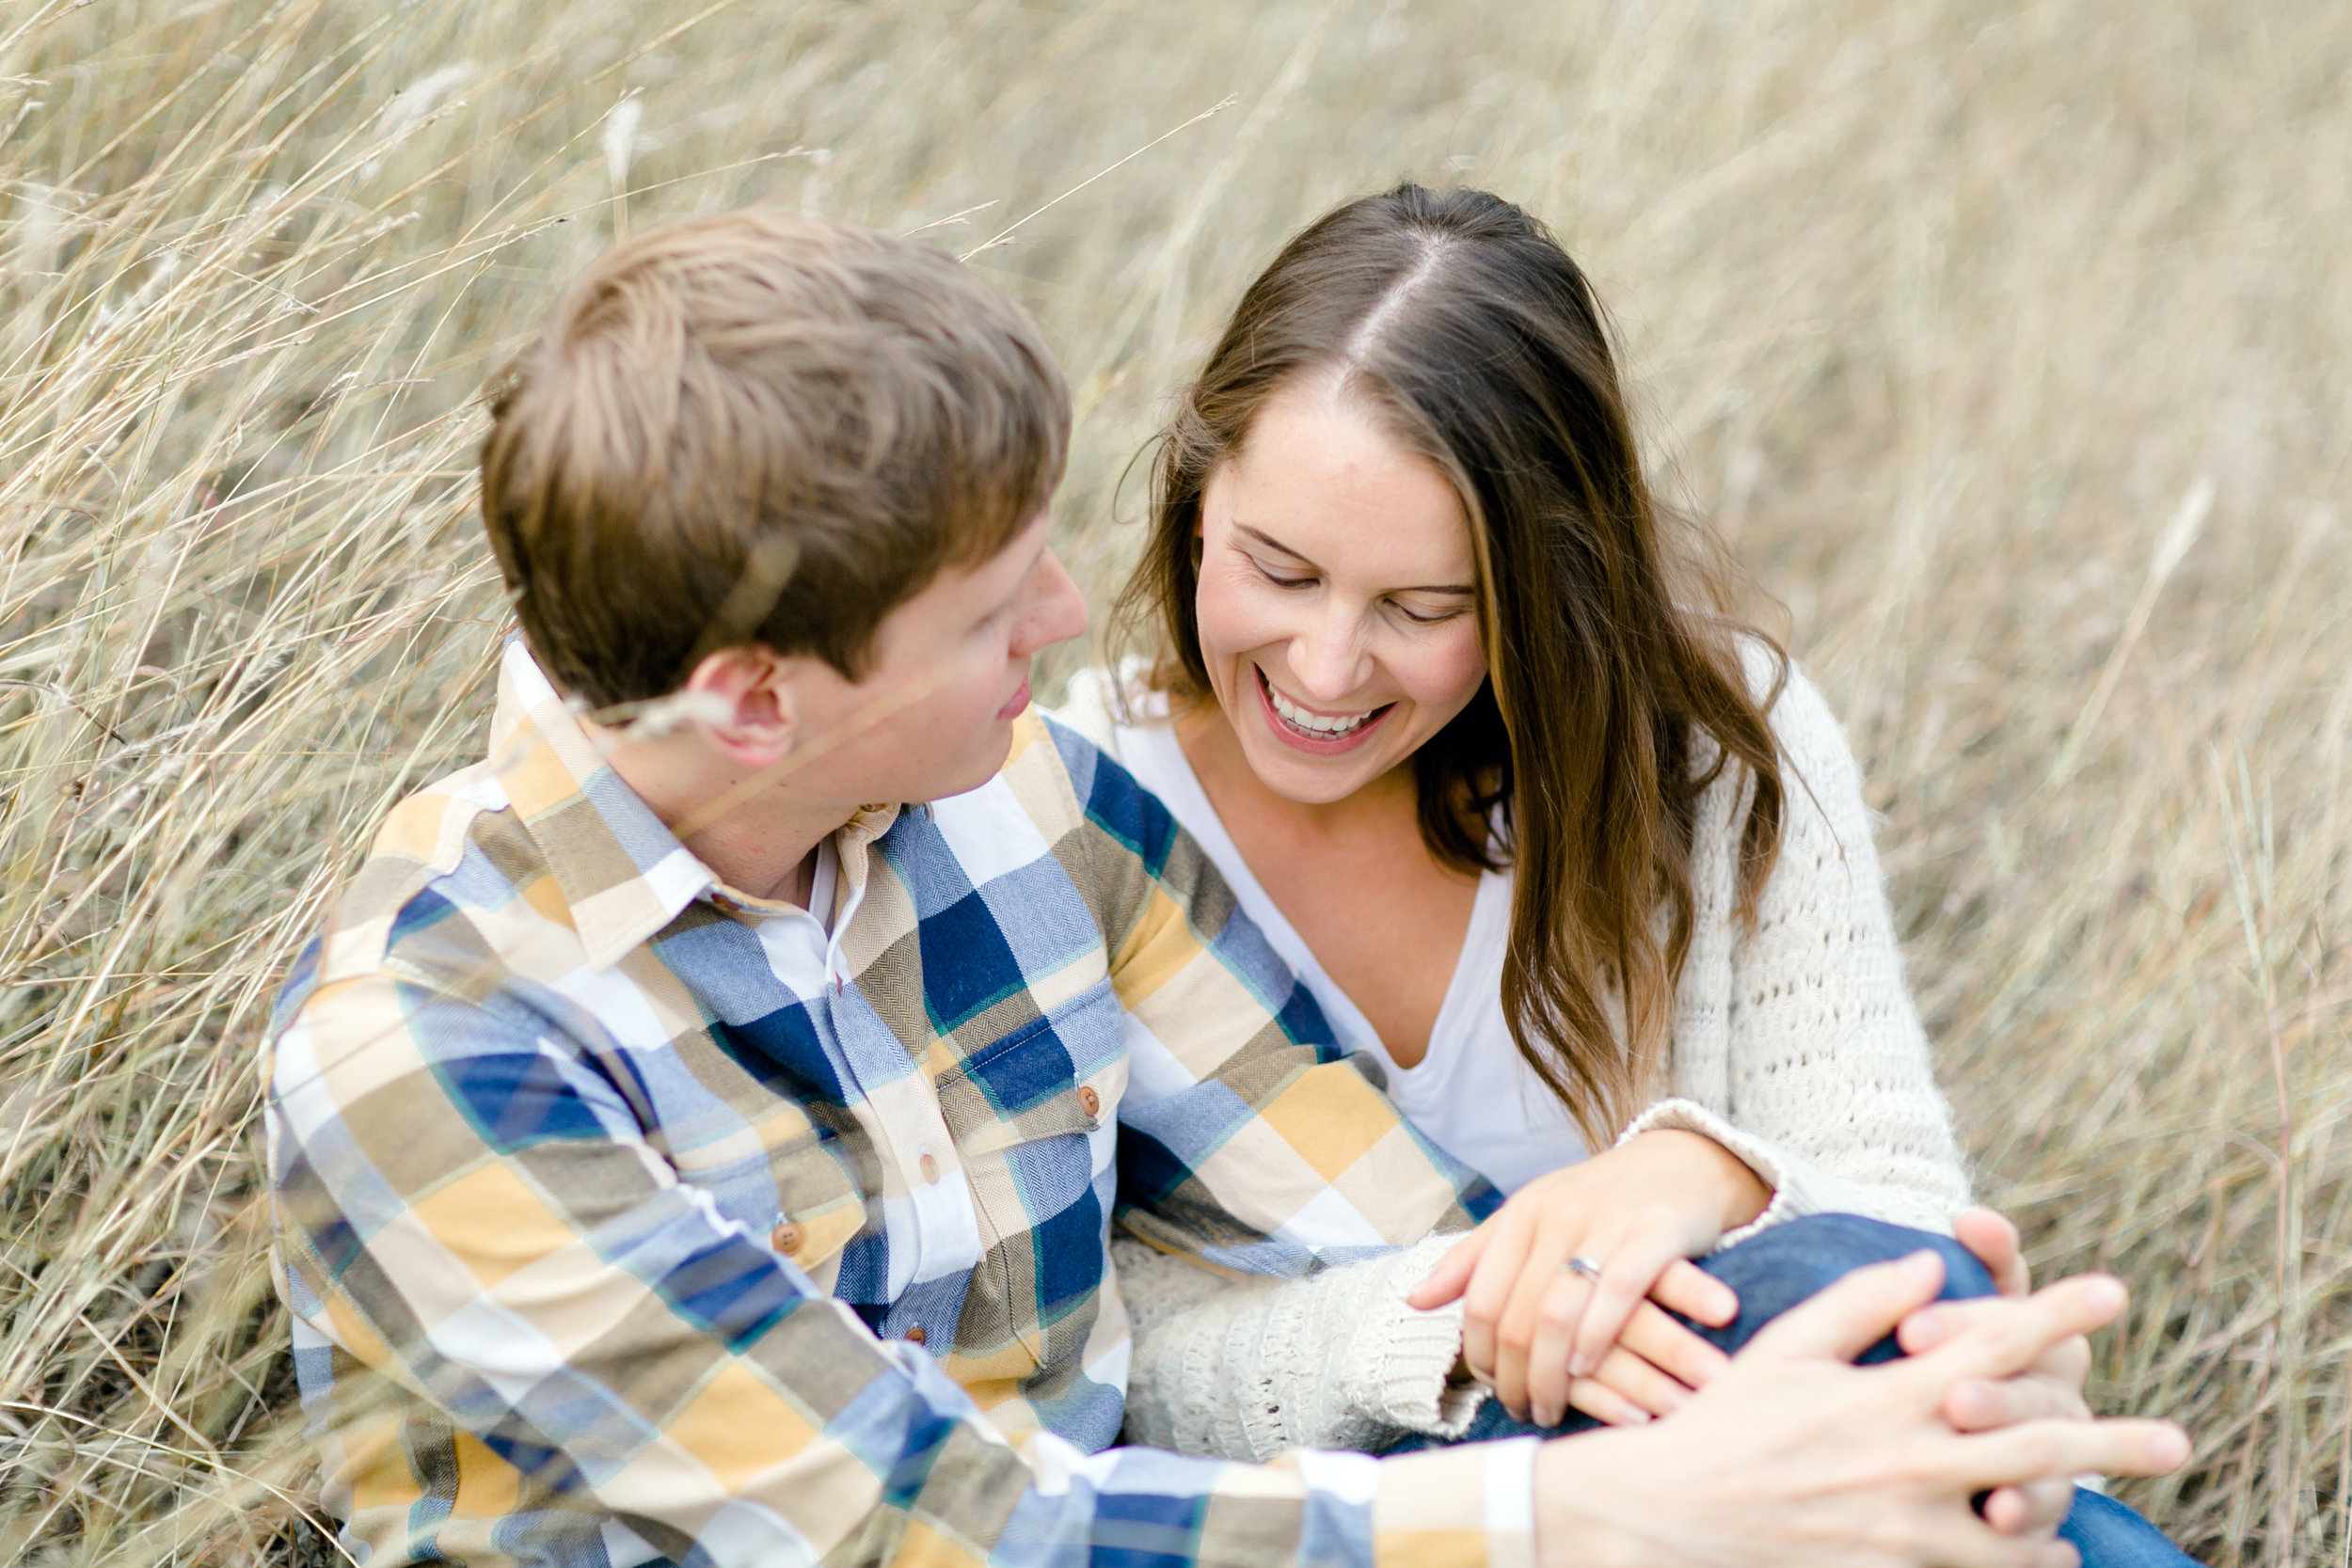 Austin_Texas_Fine_Art_Wedding_Photographer_Kayla_Snell_Photography_South_Congress_Engagement_Session125.jpg